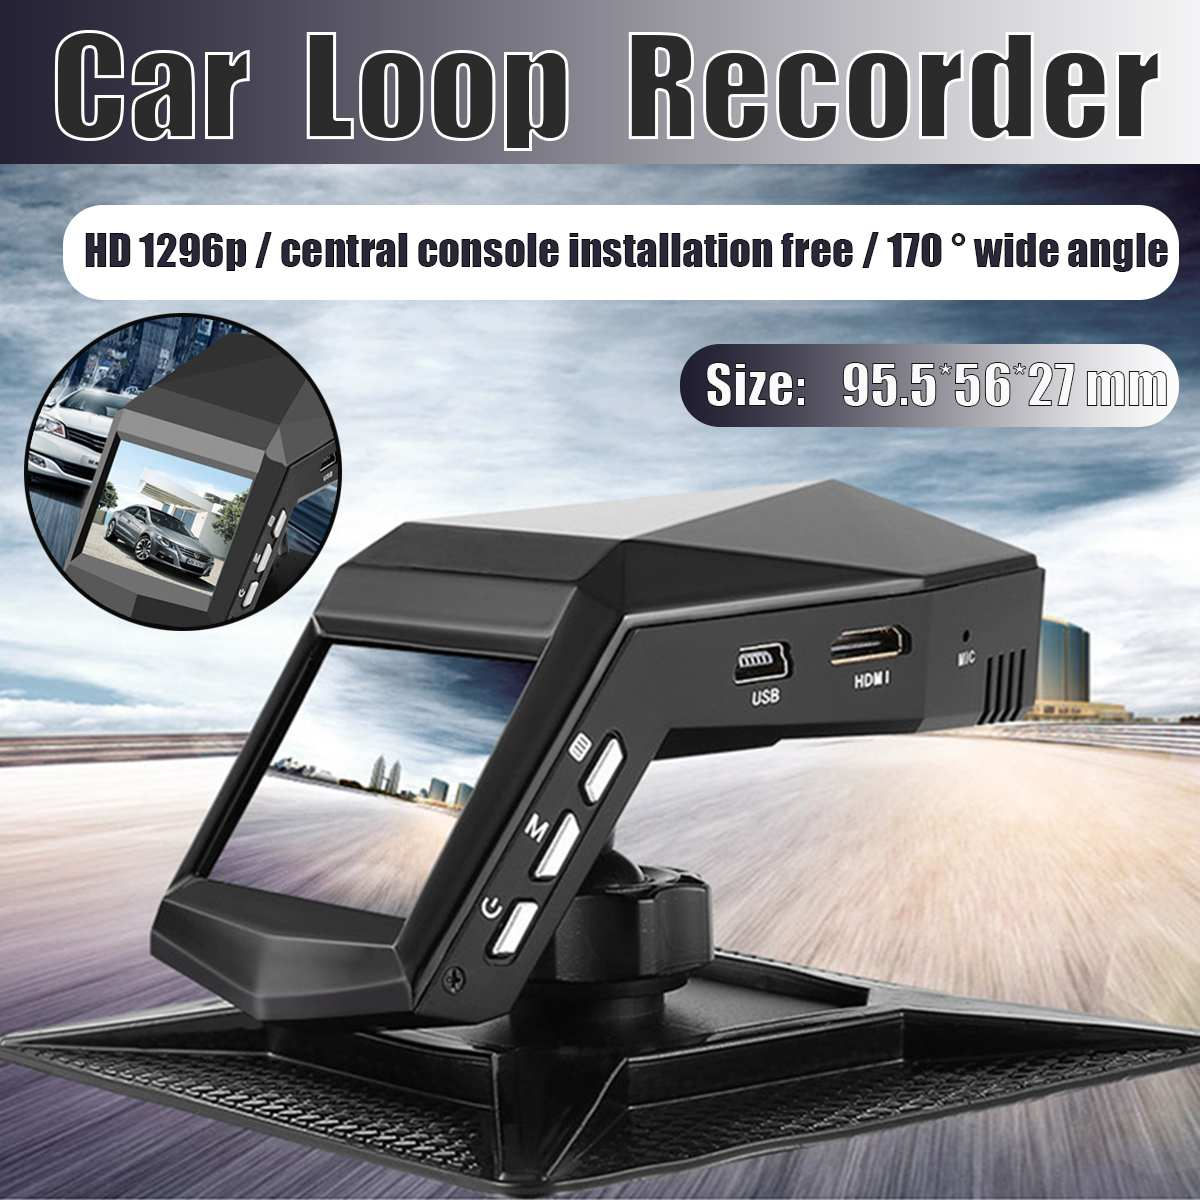 The Central Console Does Not Install Perfume Traffic Recorder 1080p Night Vision Car DVRS Dash Cam Car Video Recorder